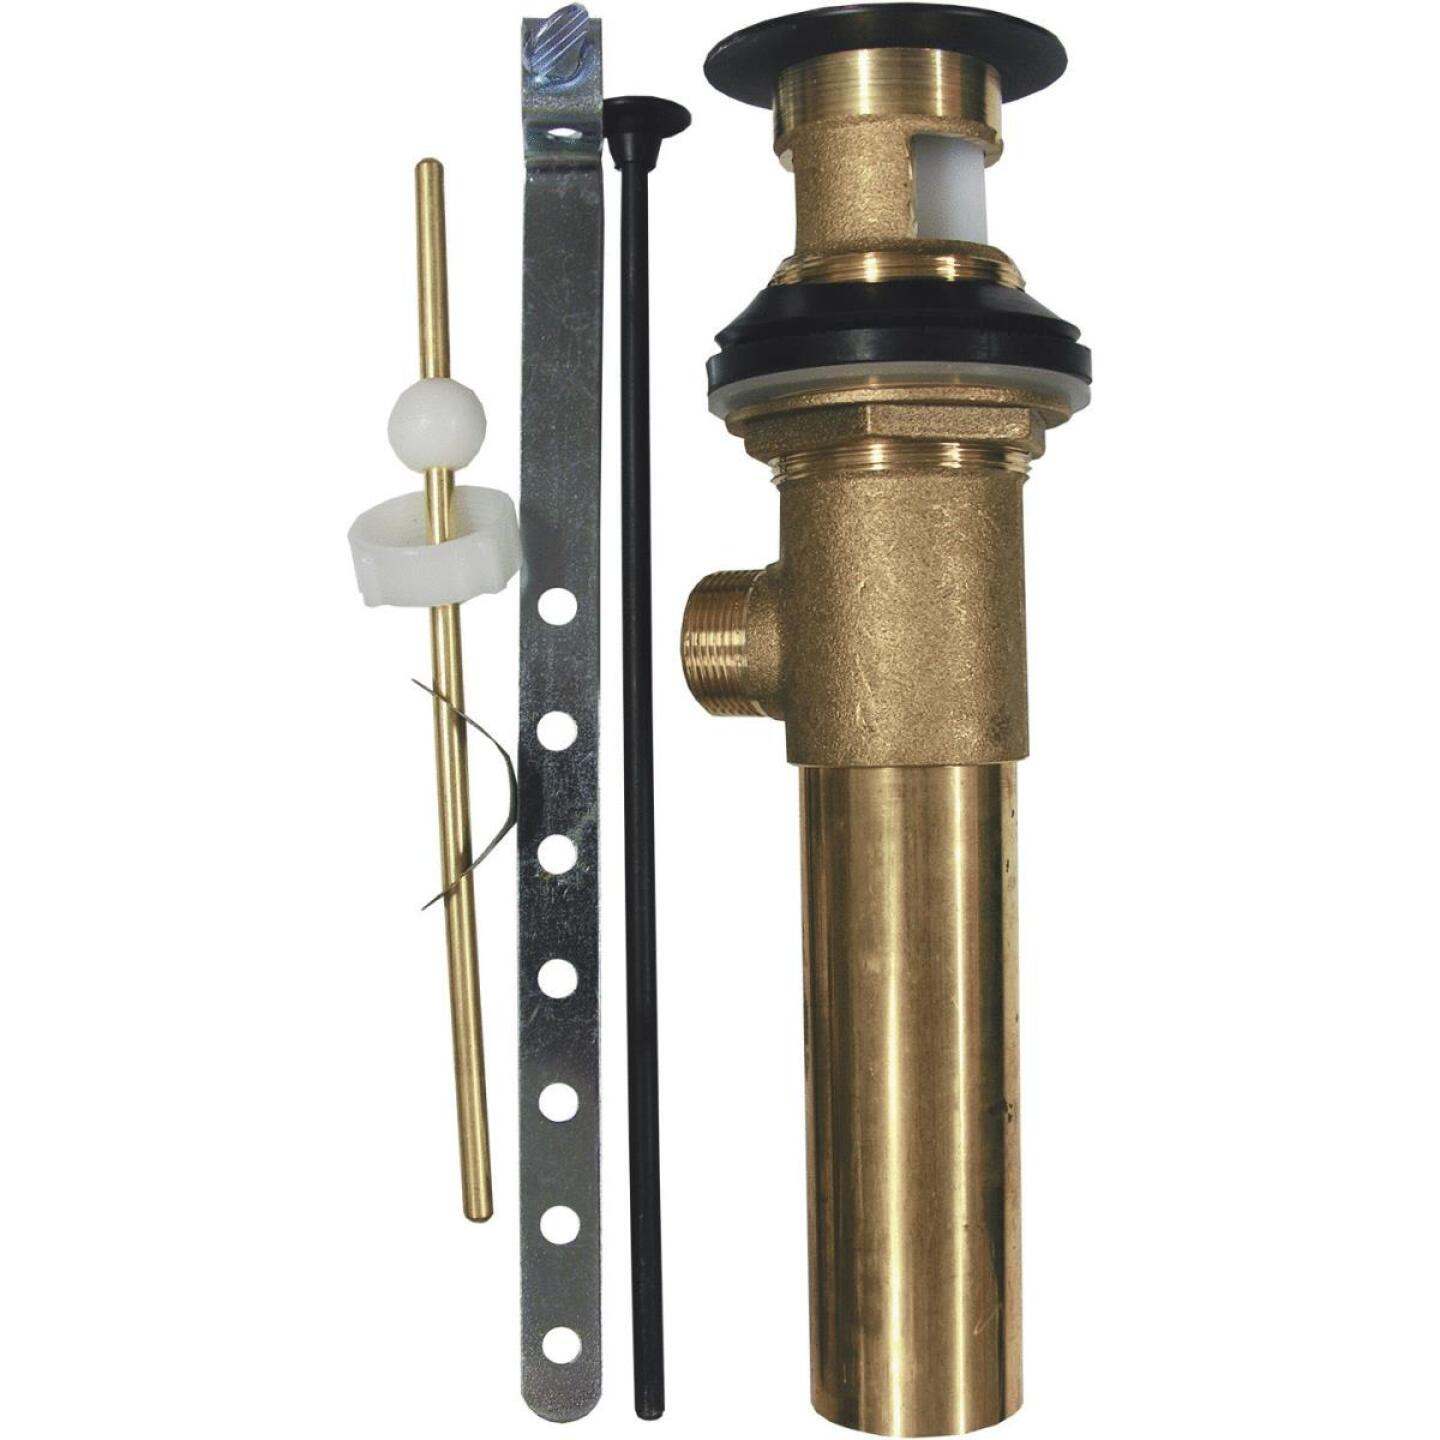 Lasco 1-1/4 In. Oil-Rubbed Bronze Brass Pop-Up Assembly Image 1